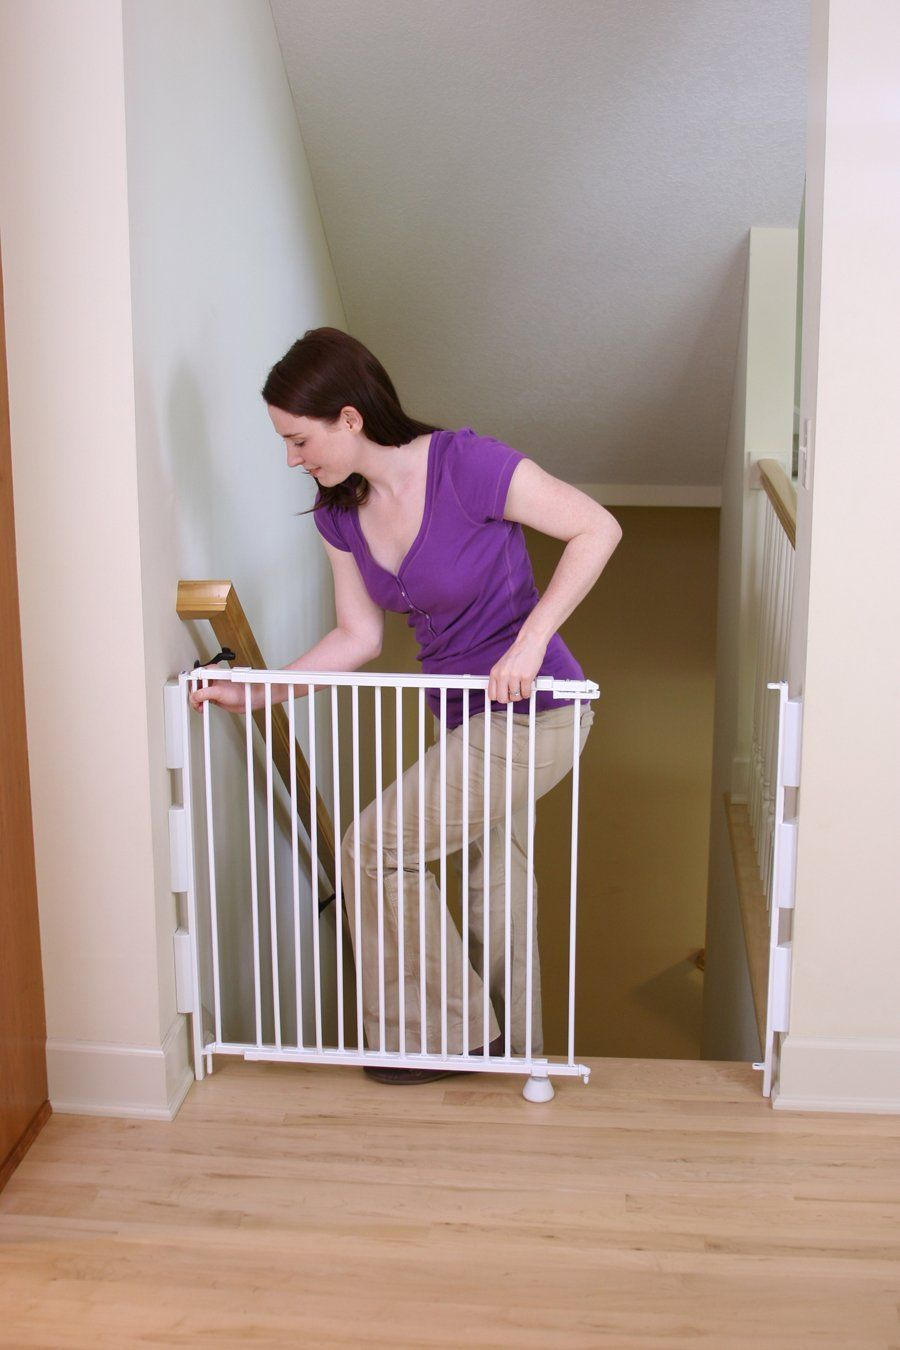 Statuette Of Good Child Safety Gates For Stairs Wall Mounted Baby Gate Baby Gates Stair Gate